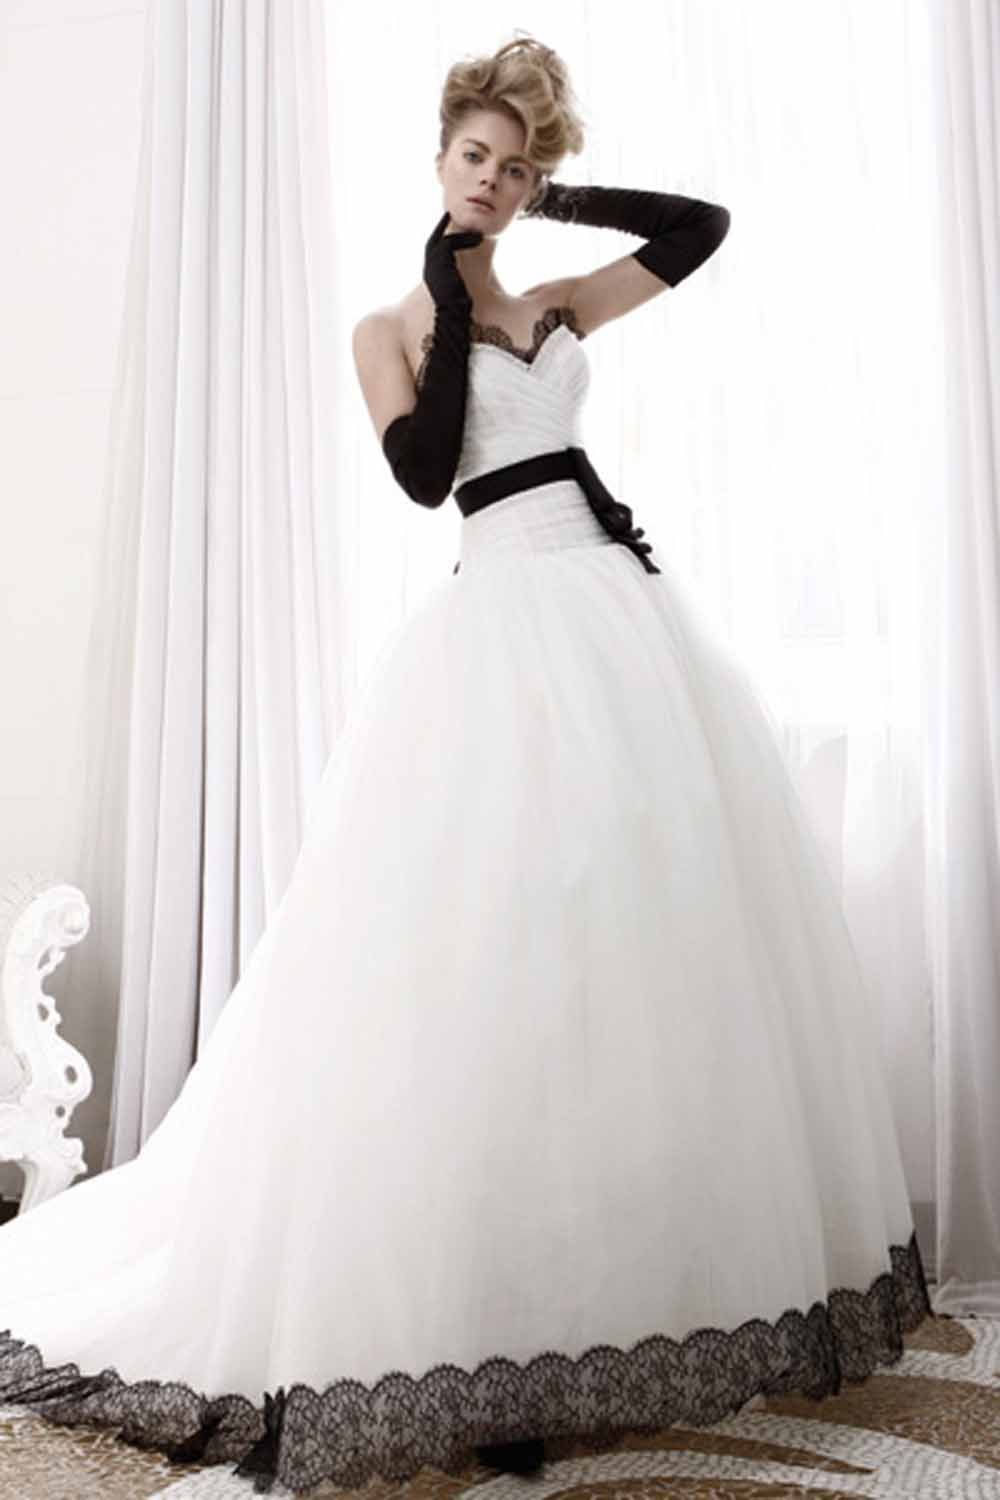 Wedding dresses with color white wedding dresses with for Images of black wedding dresses